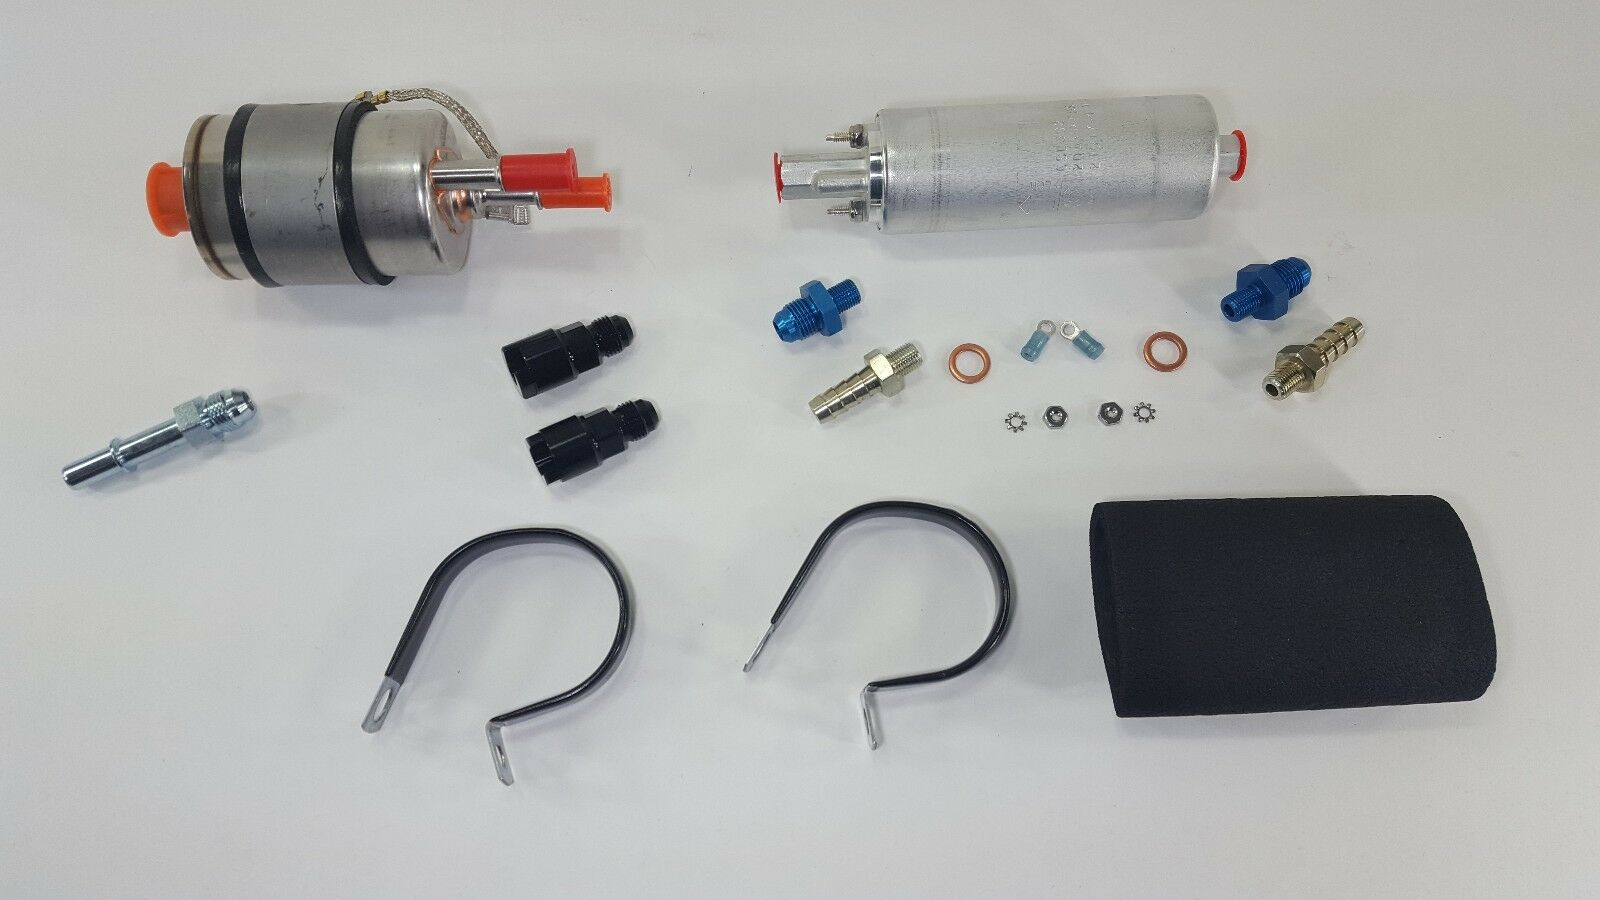 Ls1 Fuel Pump Filter Regulator Kit Engine Swap For Returnless 1 Of 6only Available